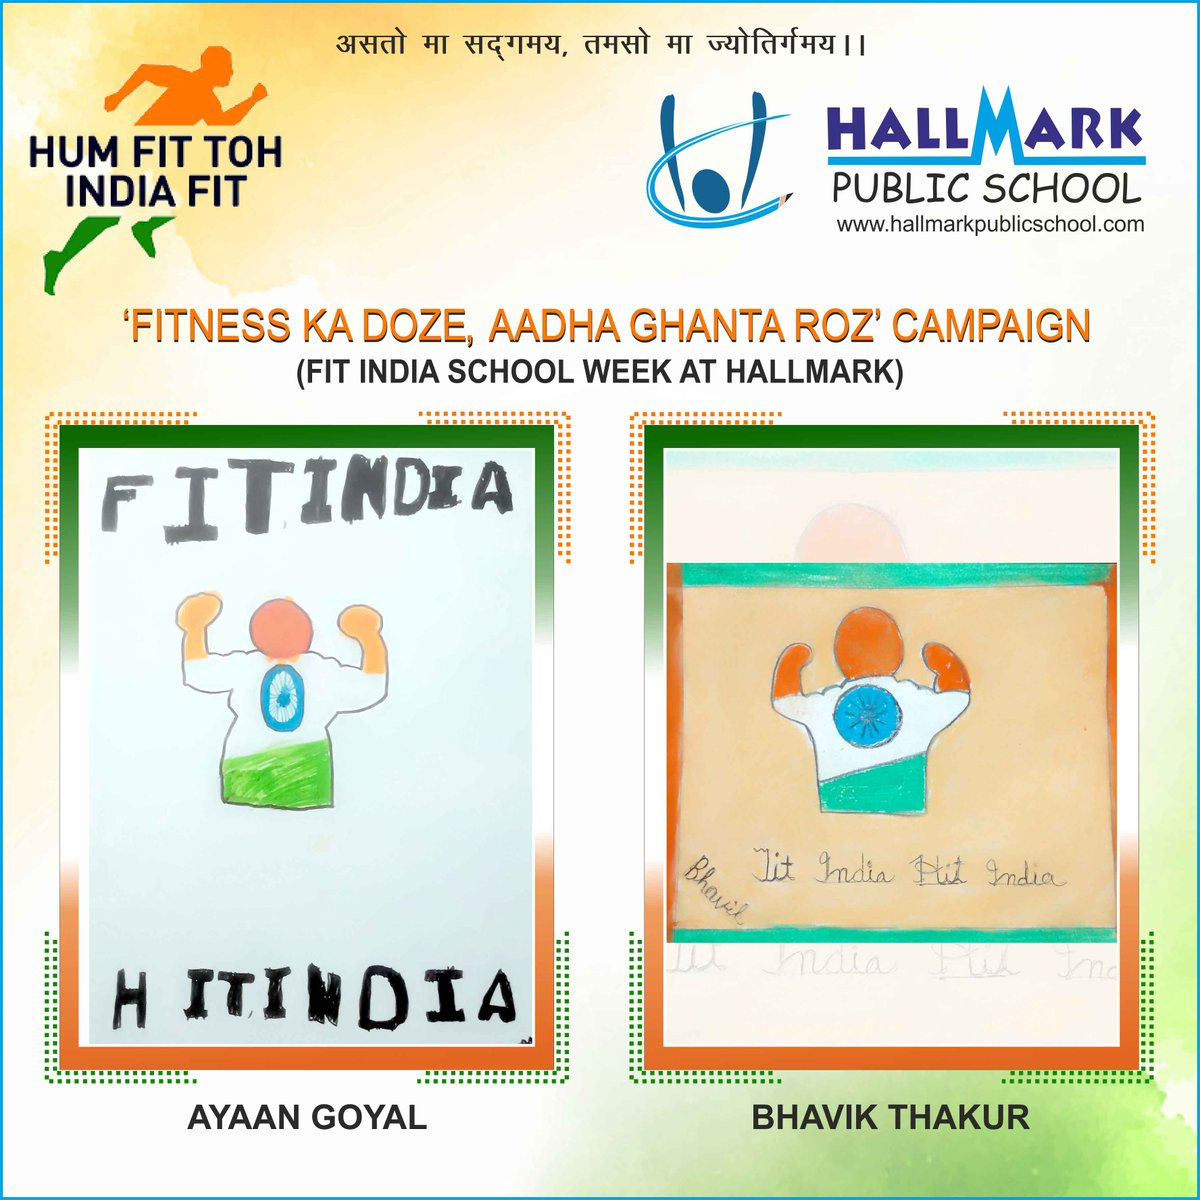 These activities assigned by the fitness experts ensured that children practice fitness at home.  #HallmarkPublicSchool #CBSESchoolInPanchkula  #KheloIndia #SAI #FitIndiaMovement #HumFitTohIndiaFit #FitnessKaSizeAadhaGhantaRoz #MinistryofYouthAffairsandSports #FitIndiaSchoolWeek